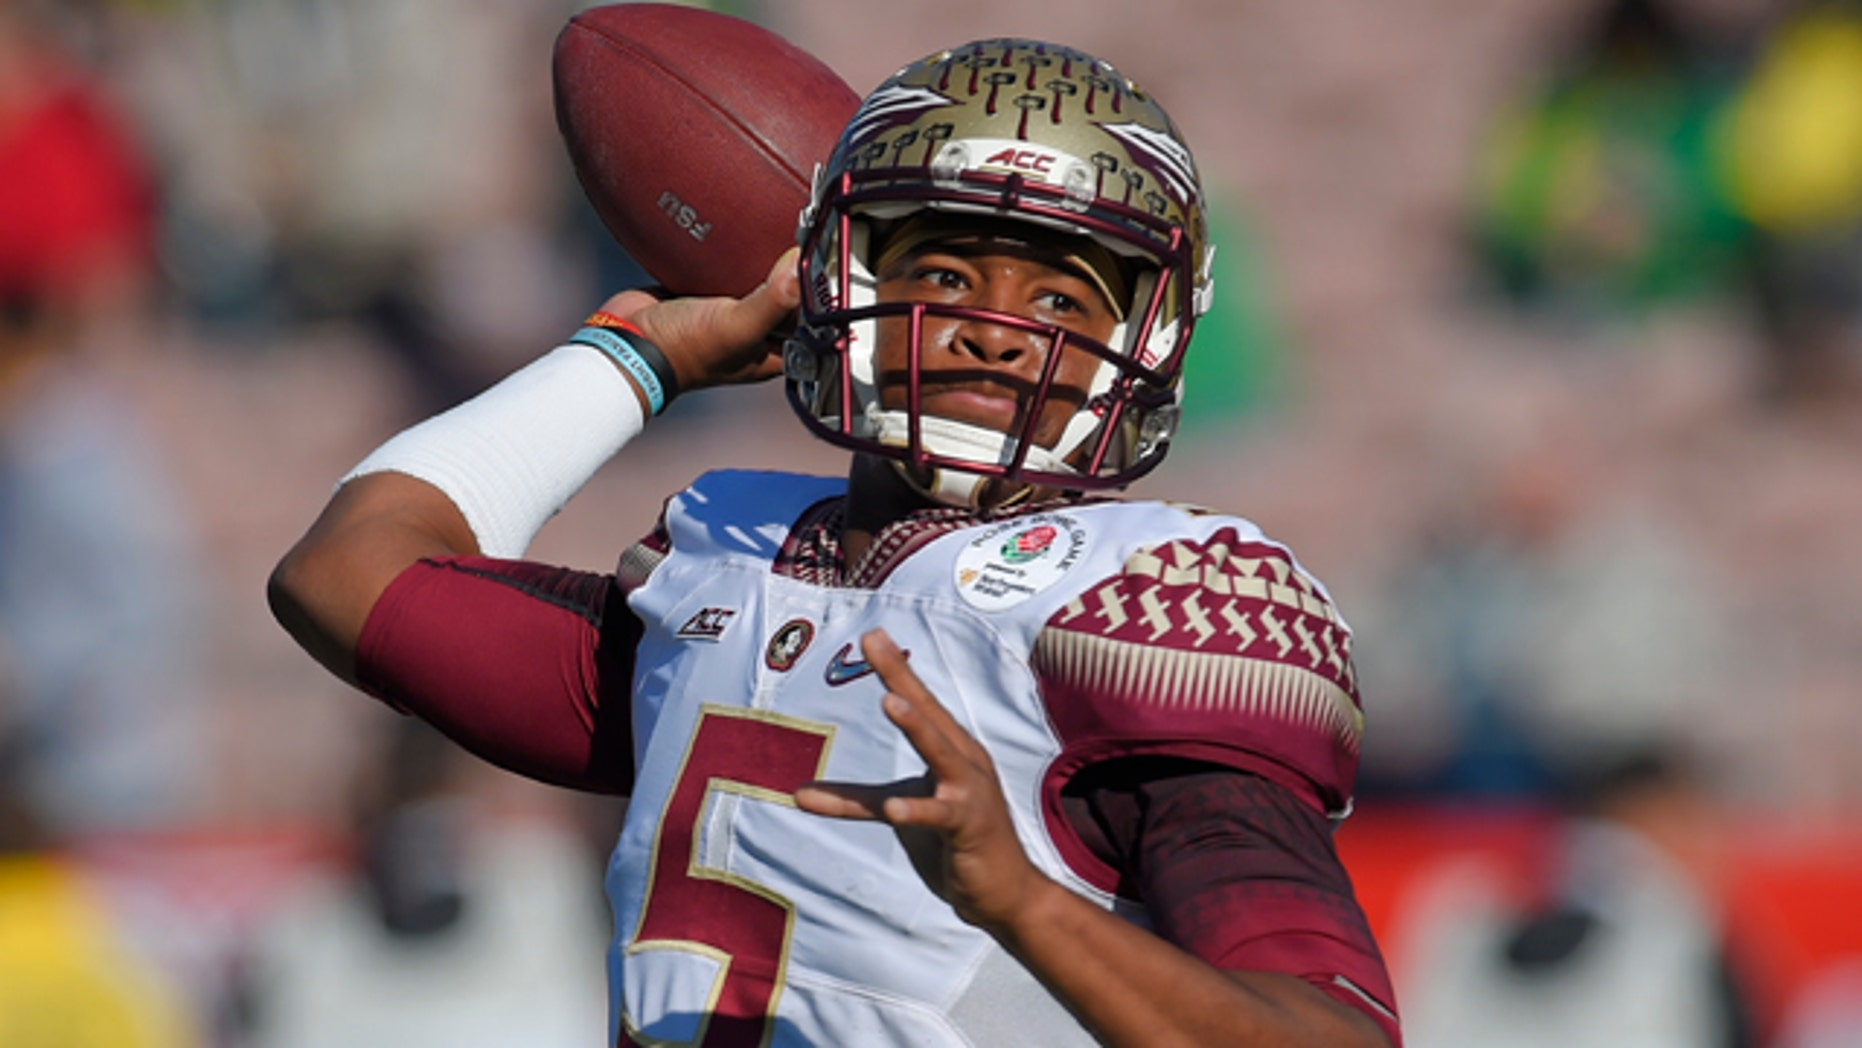 Jan. 1, 2015: Florida State quarterback Jameis Winston passes against Oregon during the first half of the Rose Bowl NCAA college football playoff semifinal, in Pasadena, Calif. (AP Photo/Mark J. Terrill, File)